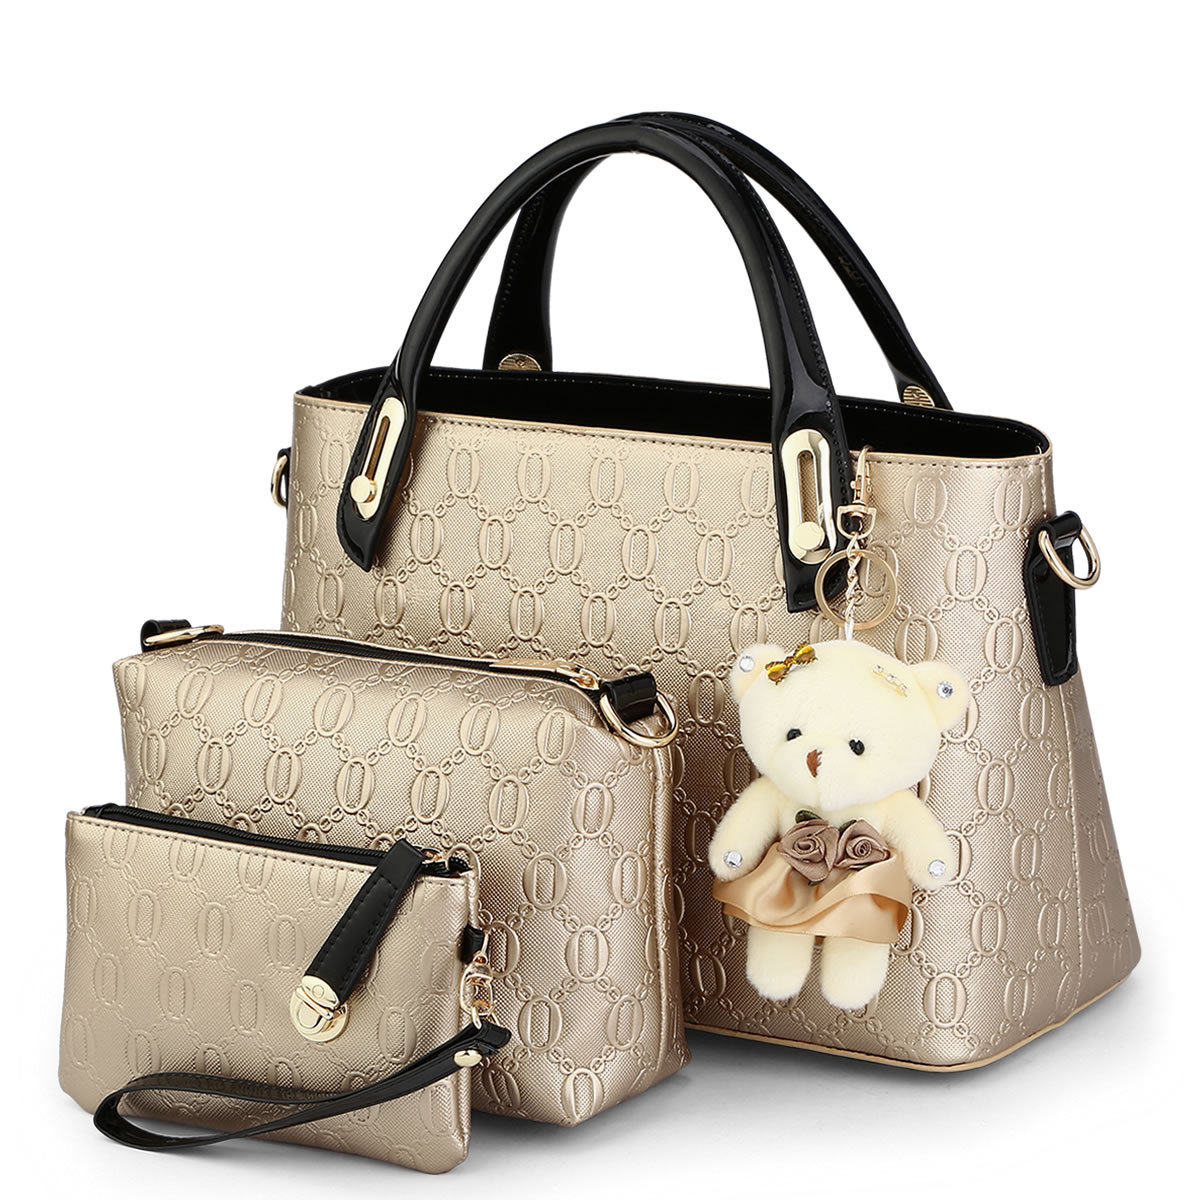 3 bags/set W/bear toy casual Embossed designer Fashion handbags high quality women messenger bags American Style shoulder bag Q5